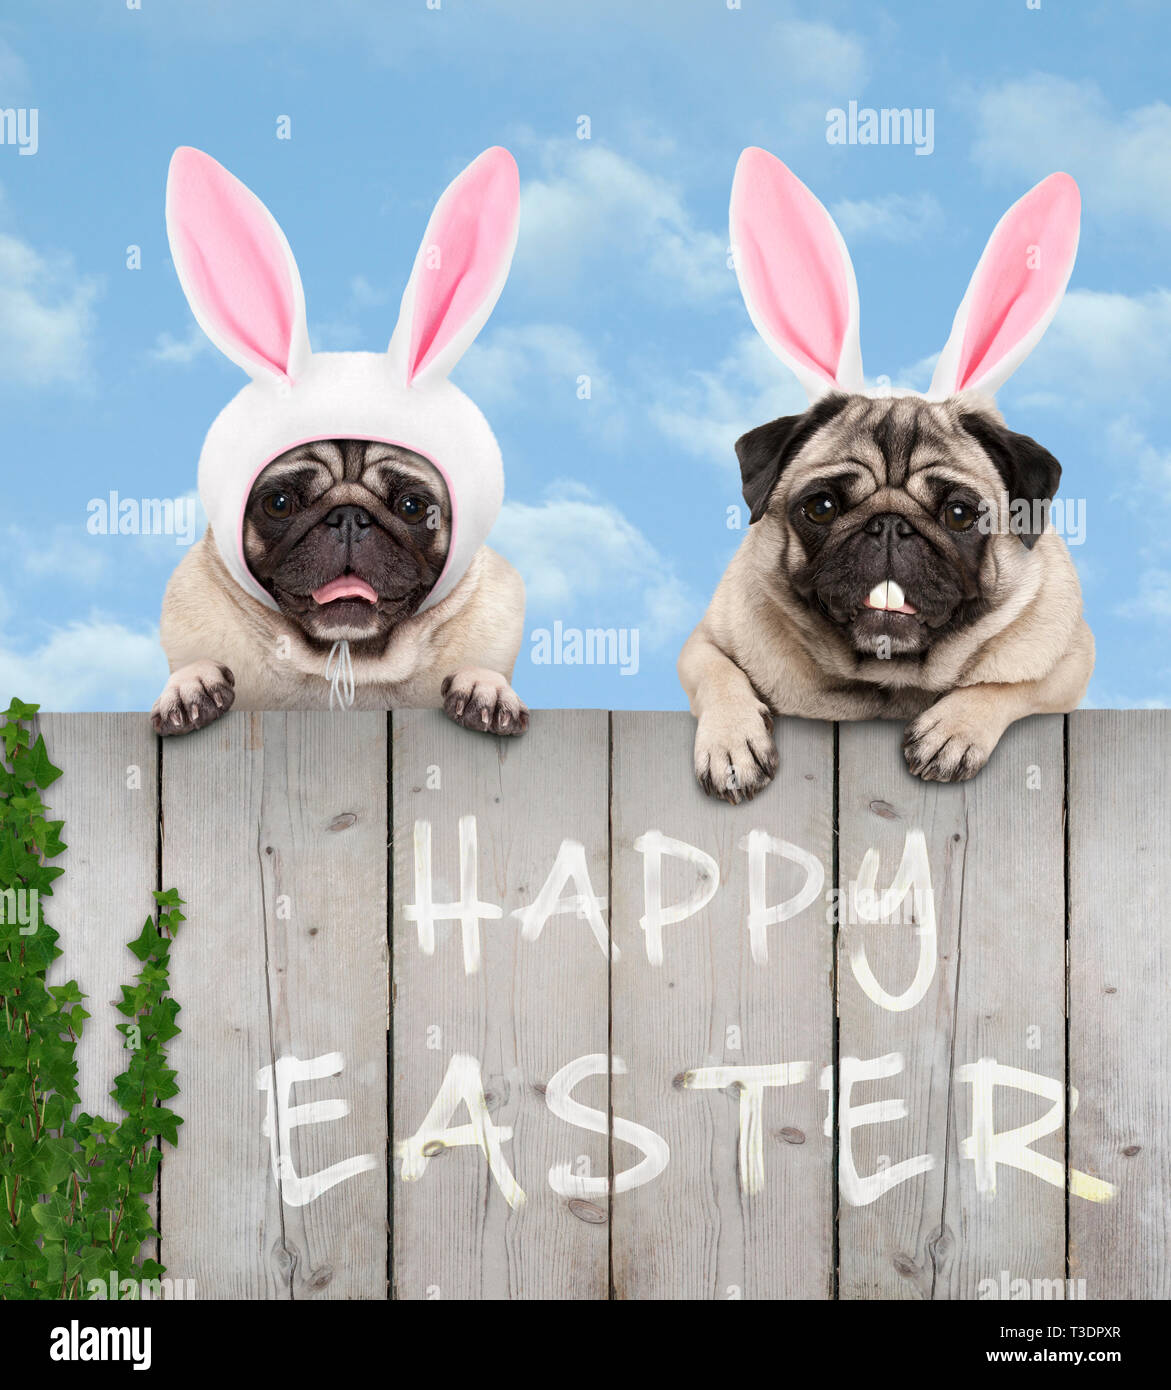 two cute pug puppy dogs, dressed up as easter bunny, hanging with paws on wooden fence, with blue sky background Stock Photo